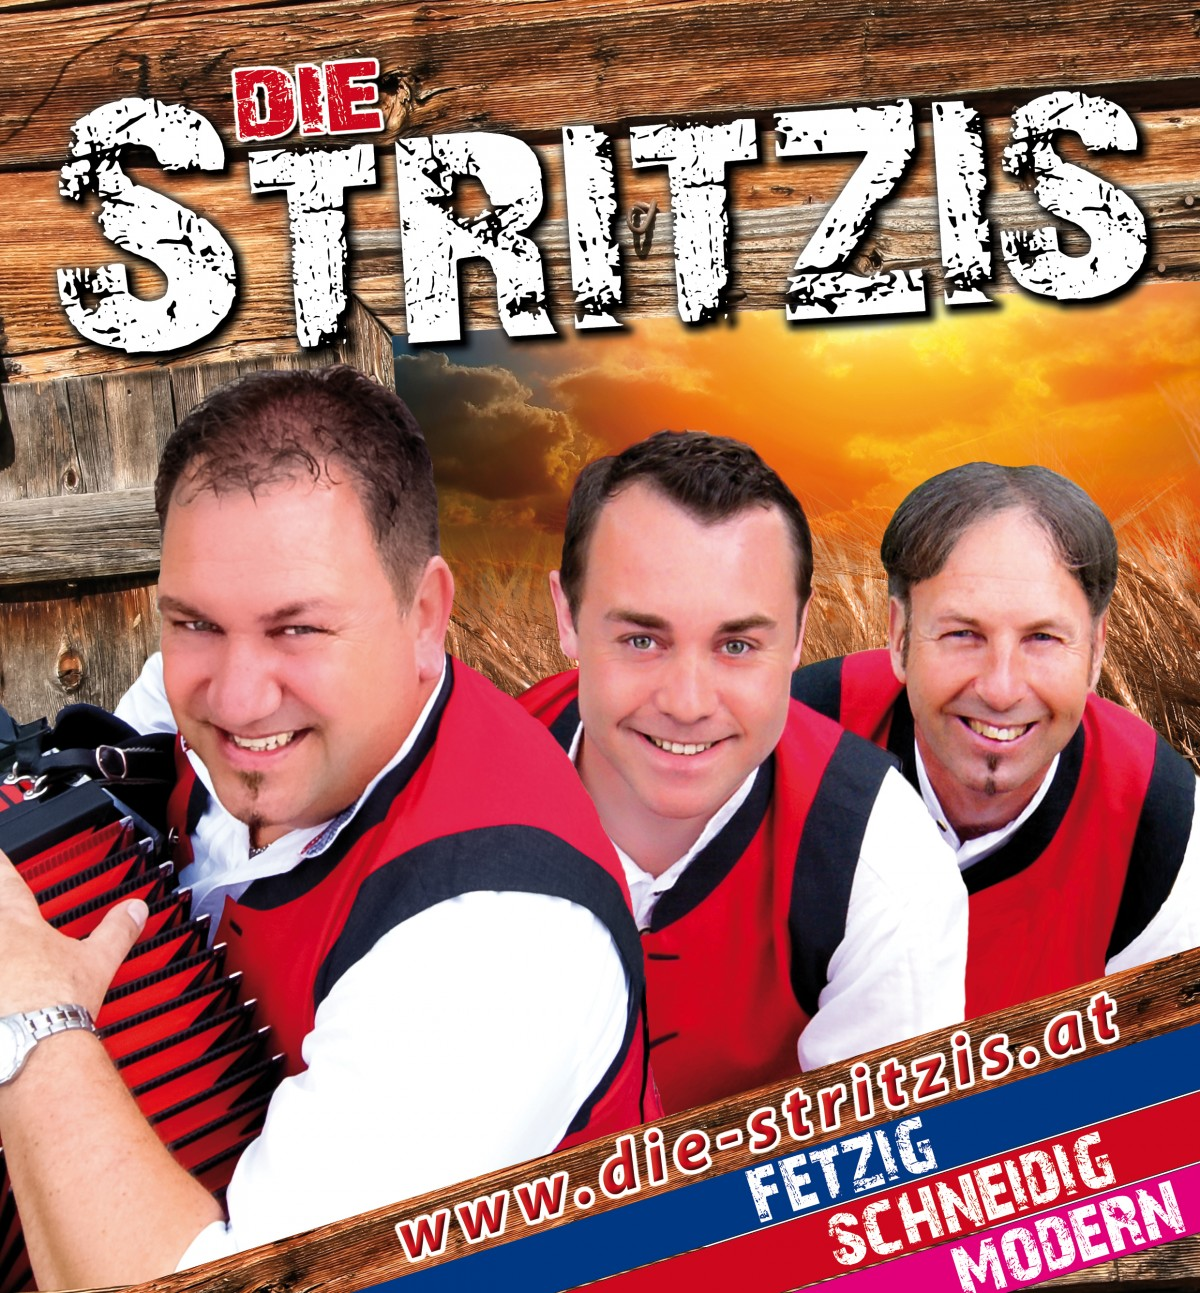 http://www.musikgruppe.at/wp-content/uploads/2015/06/fuer-Presse-wpcf_1200x1293.jpg